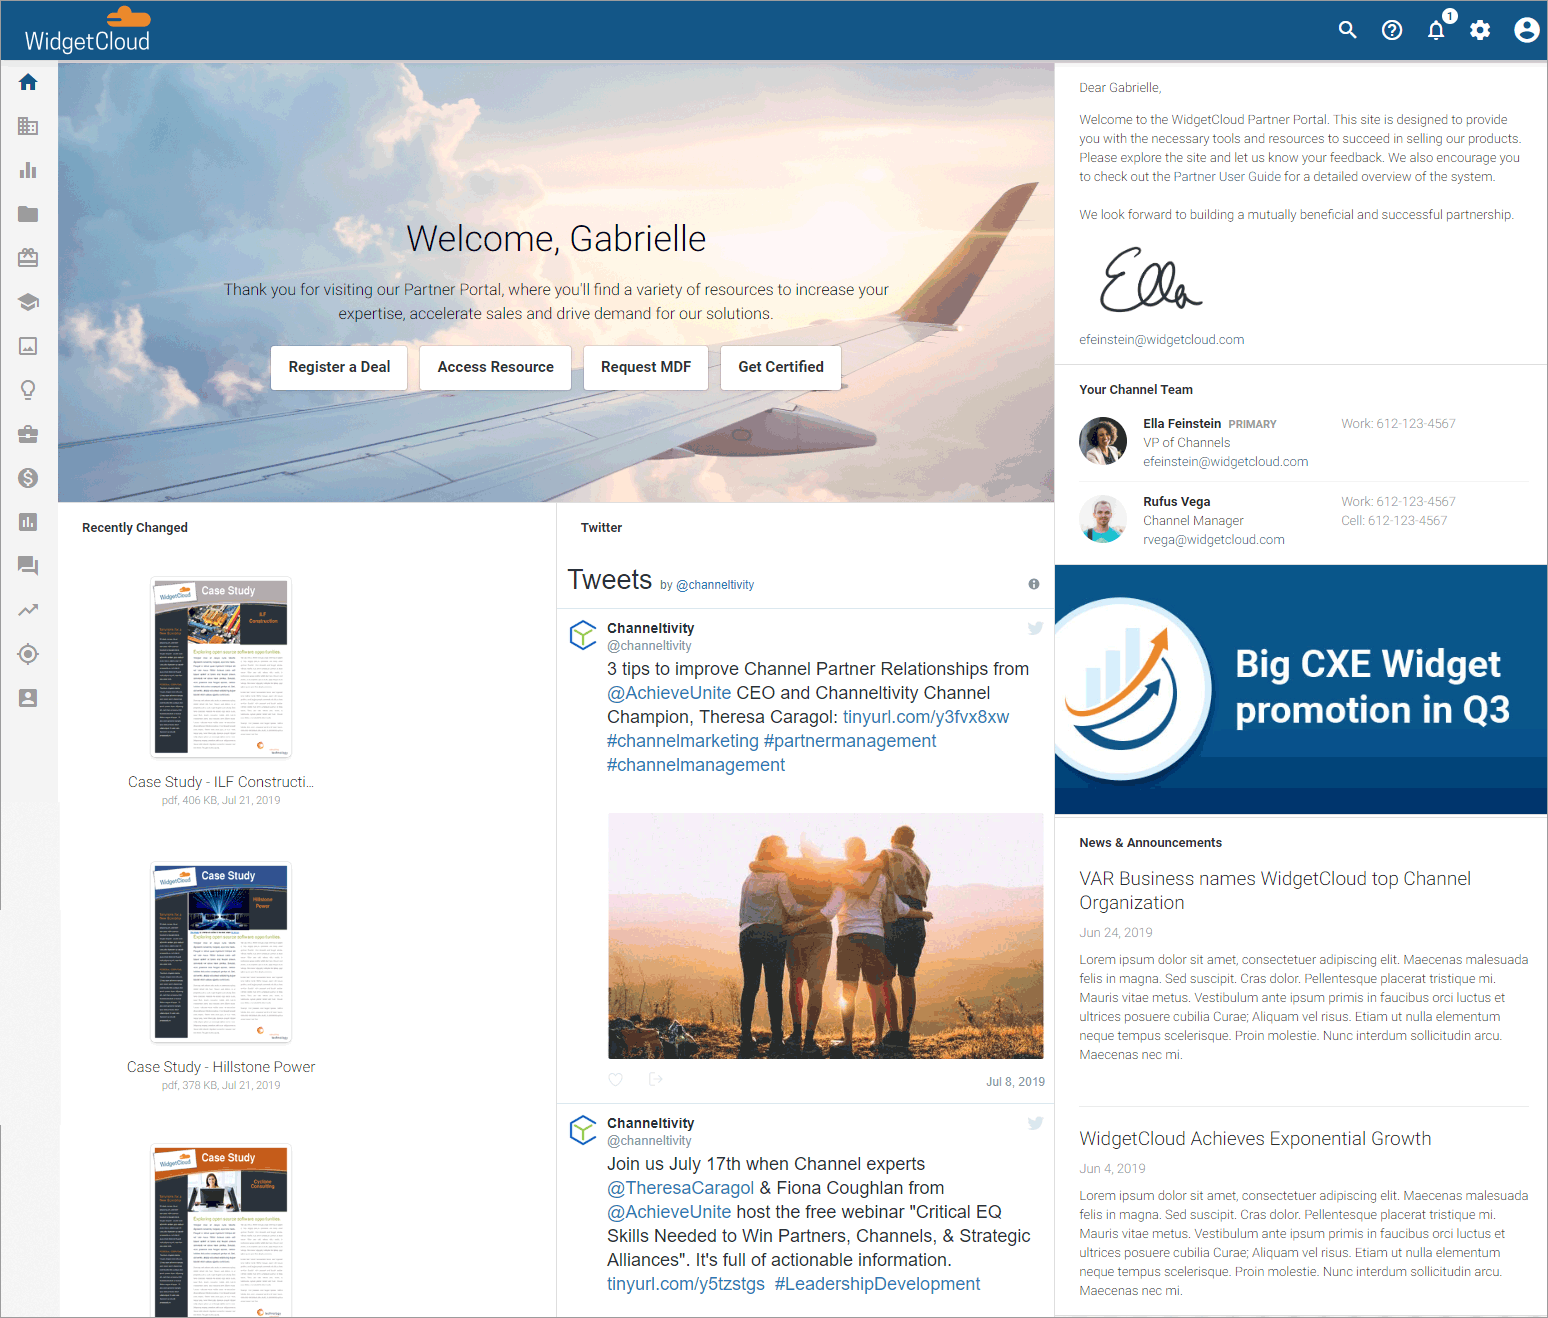 Best Practices For Designing Your Partner Portal Home Page Support Portal Knowledge Base